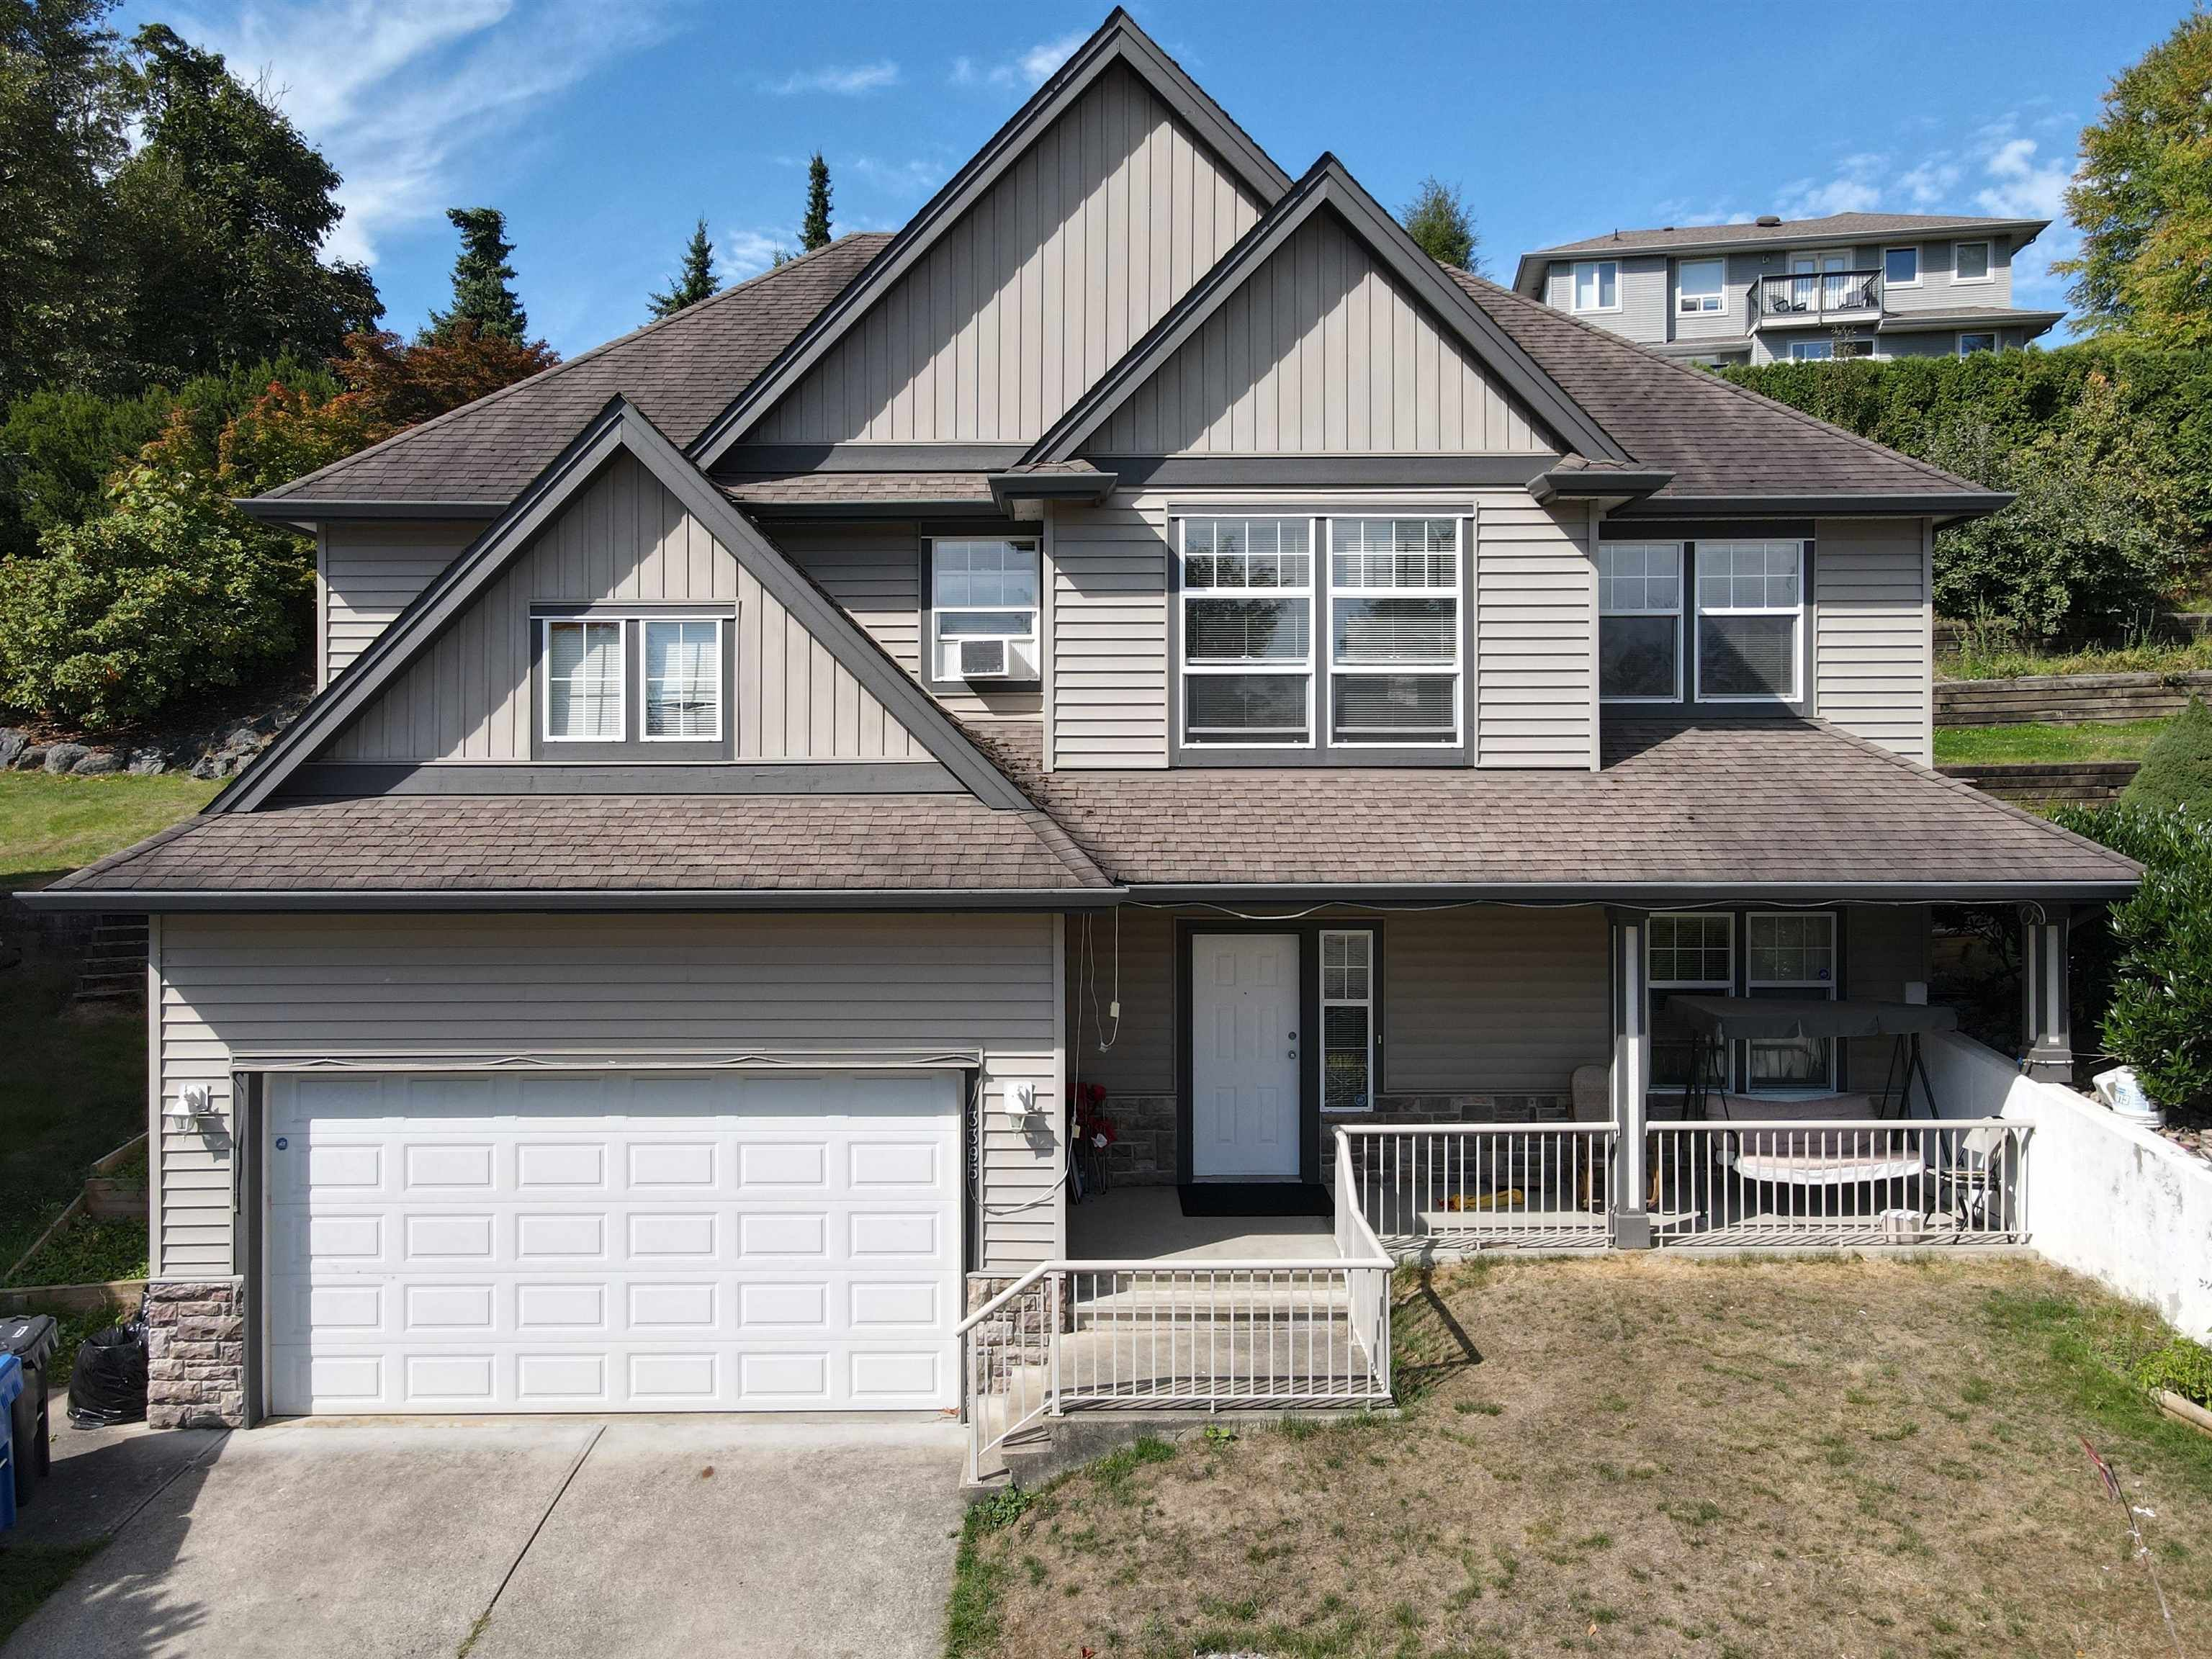 Main Photo: 3395 PROMONTORY Crescent in Abbotsford: Abbotsford West House for sale : MLS®# R2615749